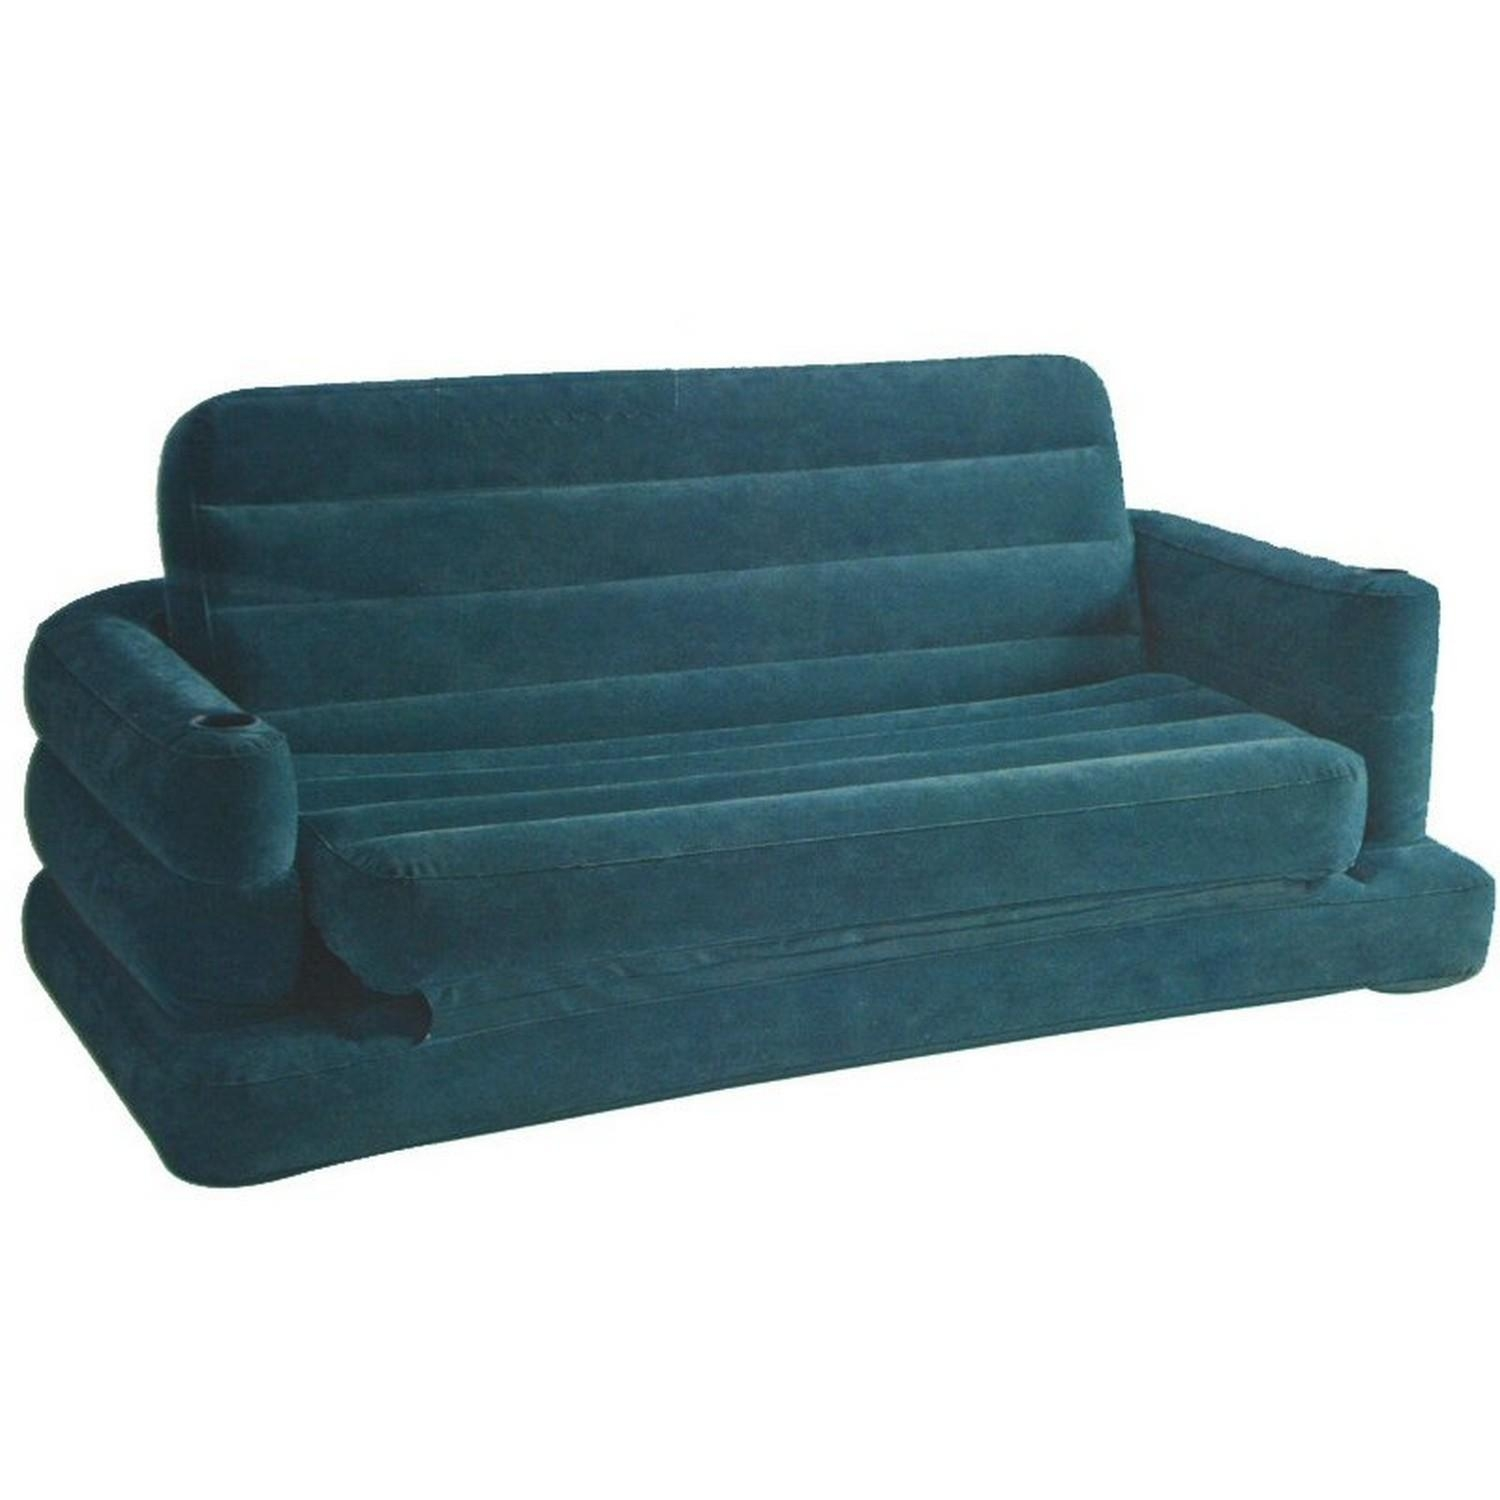 Sofa Bed Air Mattress Inflatable Pull Out Air Sofa Bed Mattress For Intex Inflatable Pull Out Sofas (Image 19 of 20)